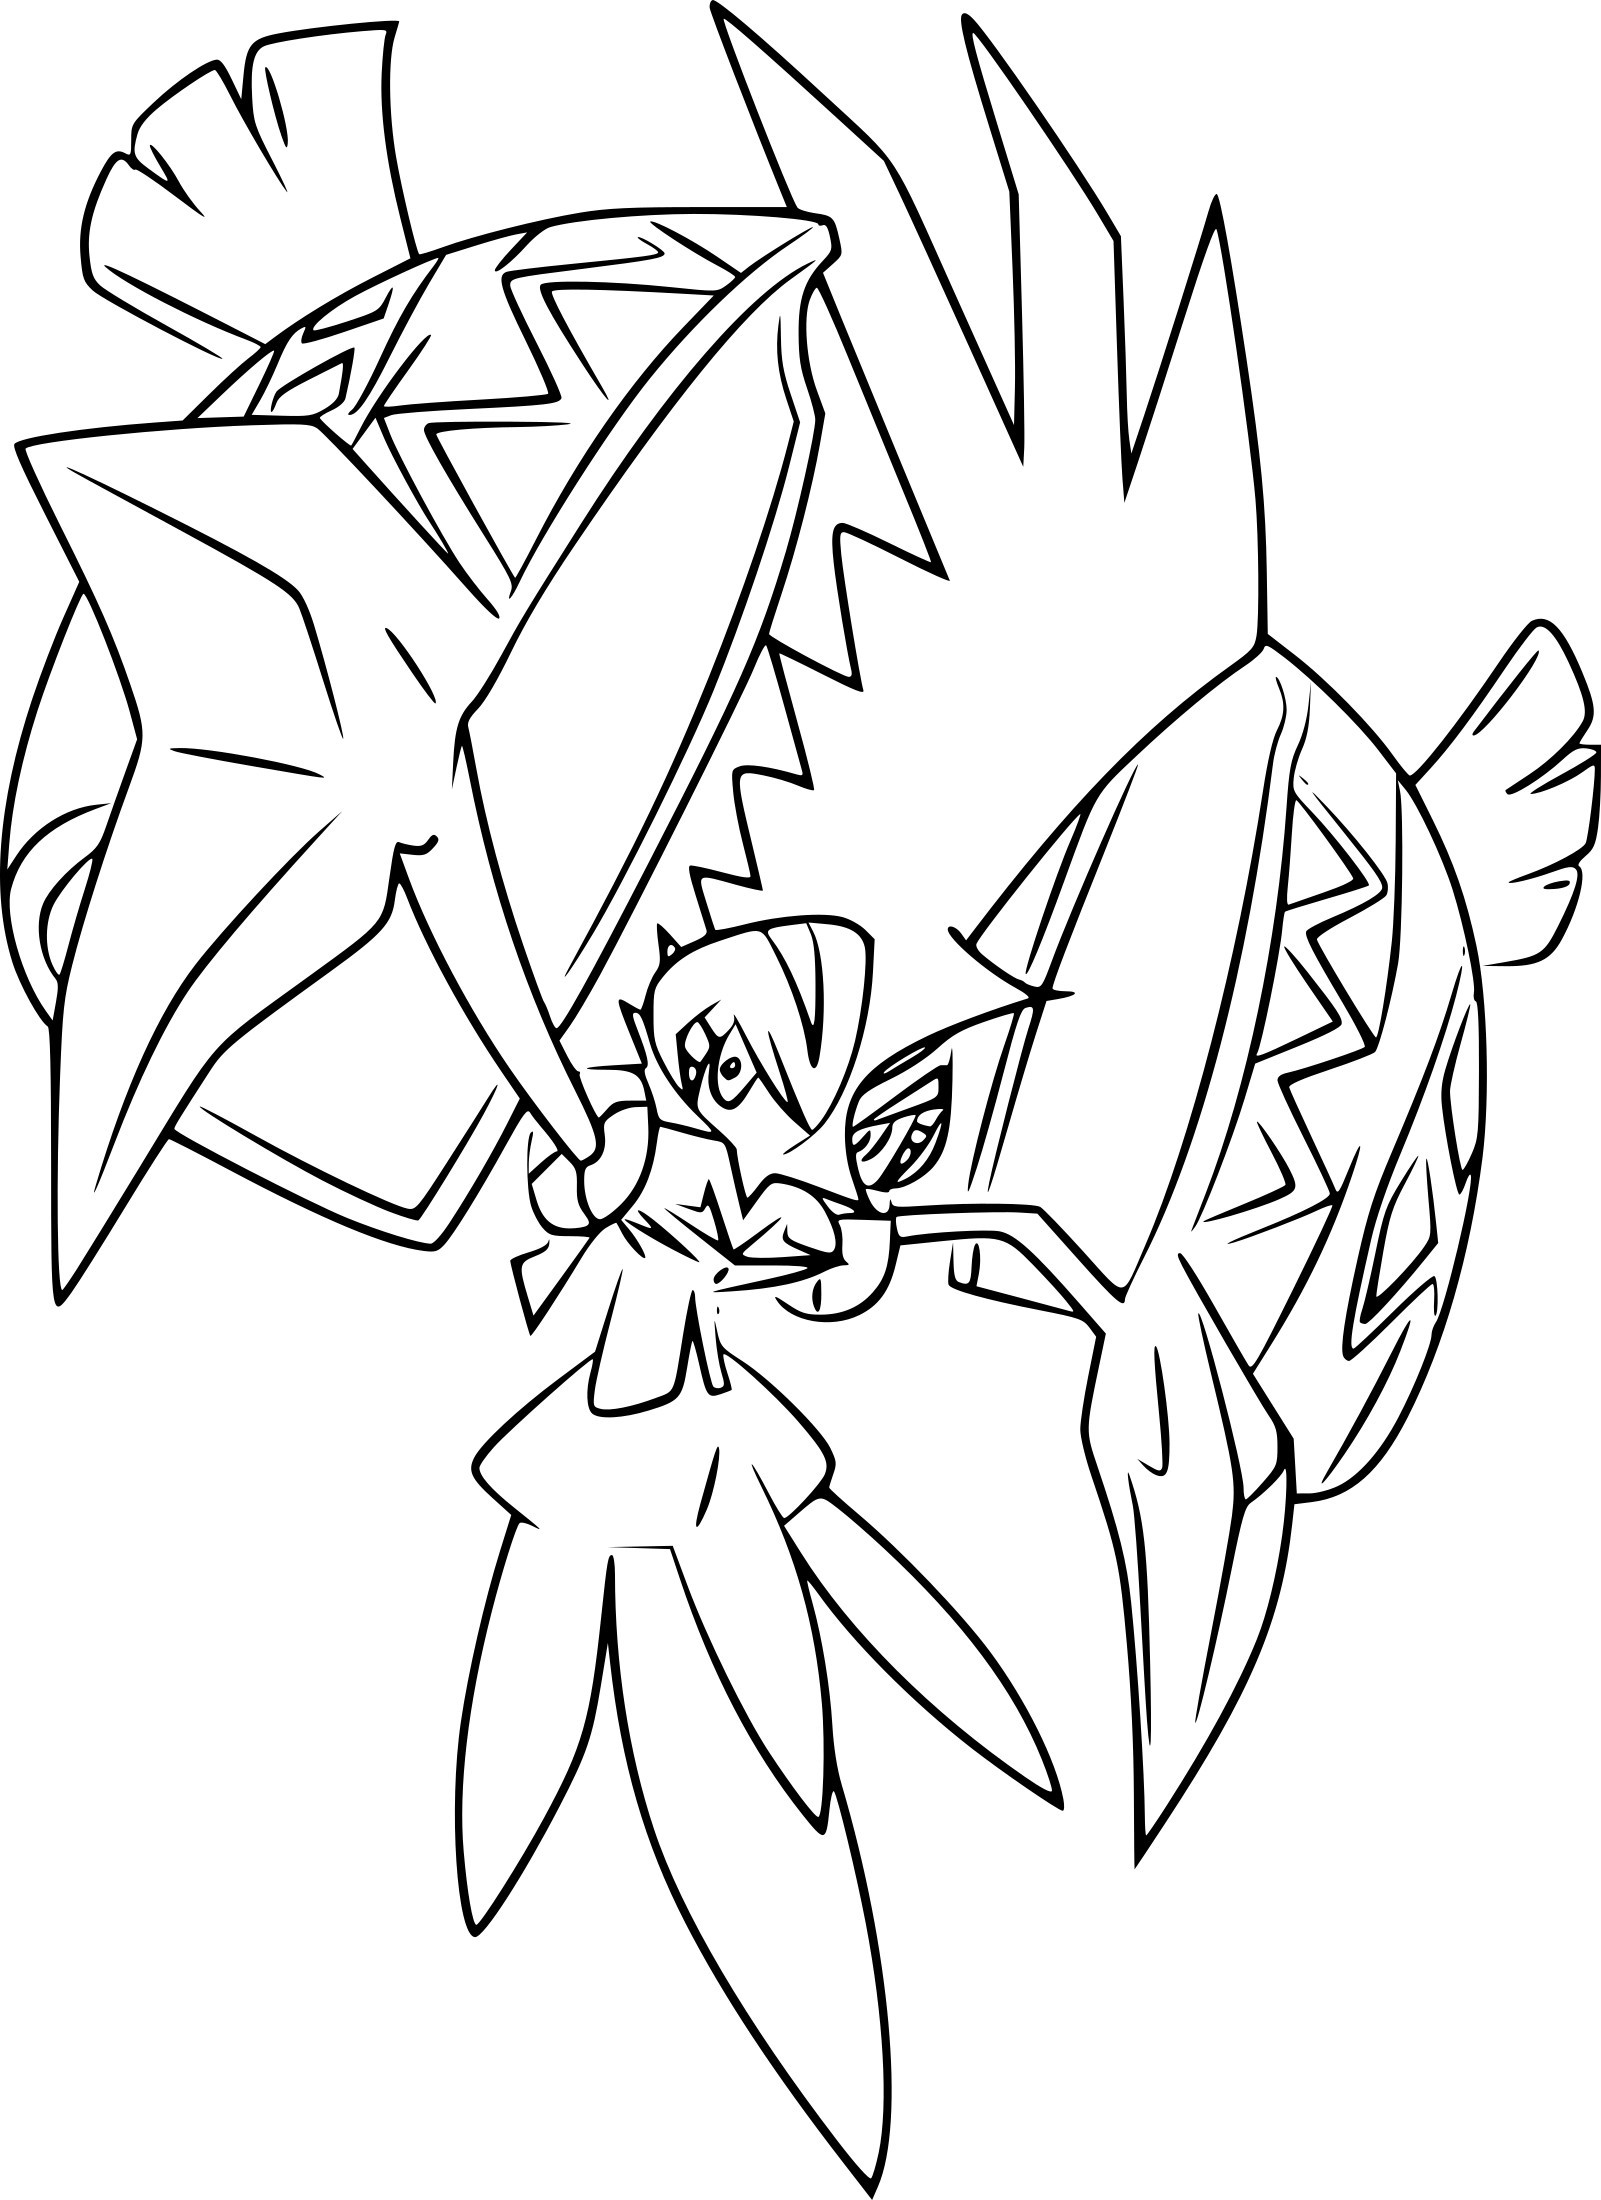 pokemon-tapu-koko-coloring-pages-of-pokemon-tapu-koko-coloring-pages Pokemon Tapu Koko Coloring Pages Cartoon